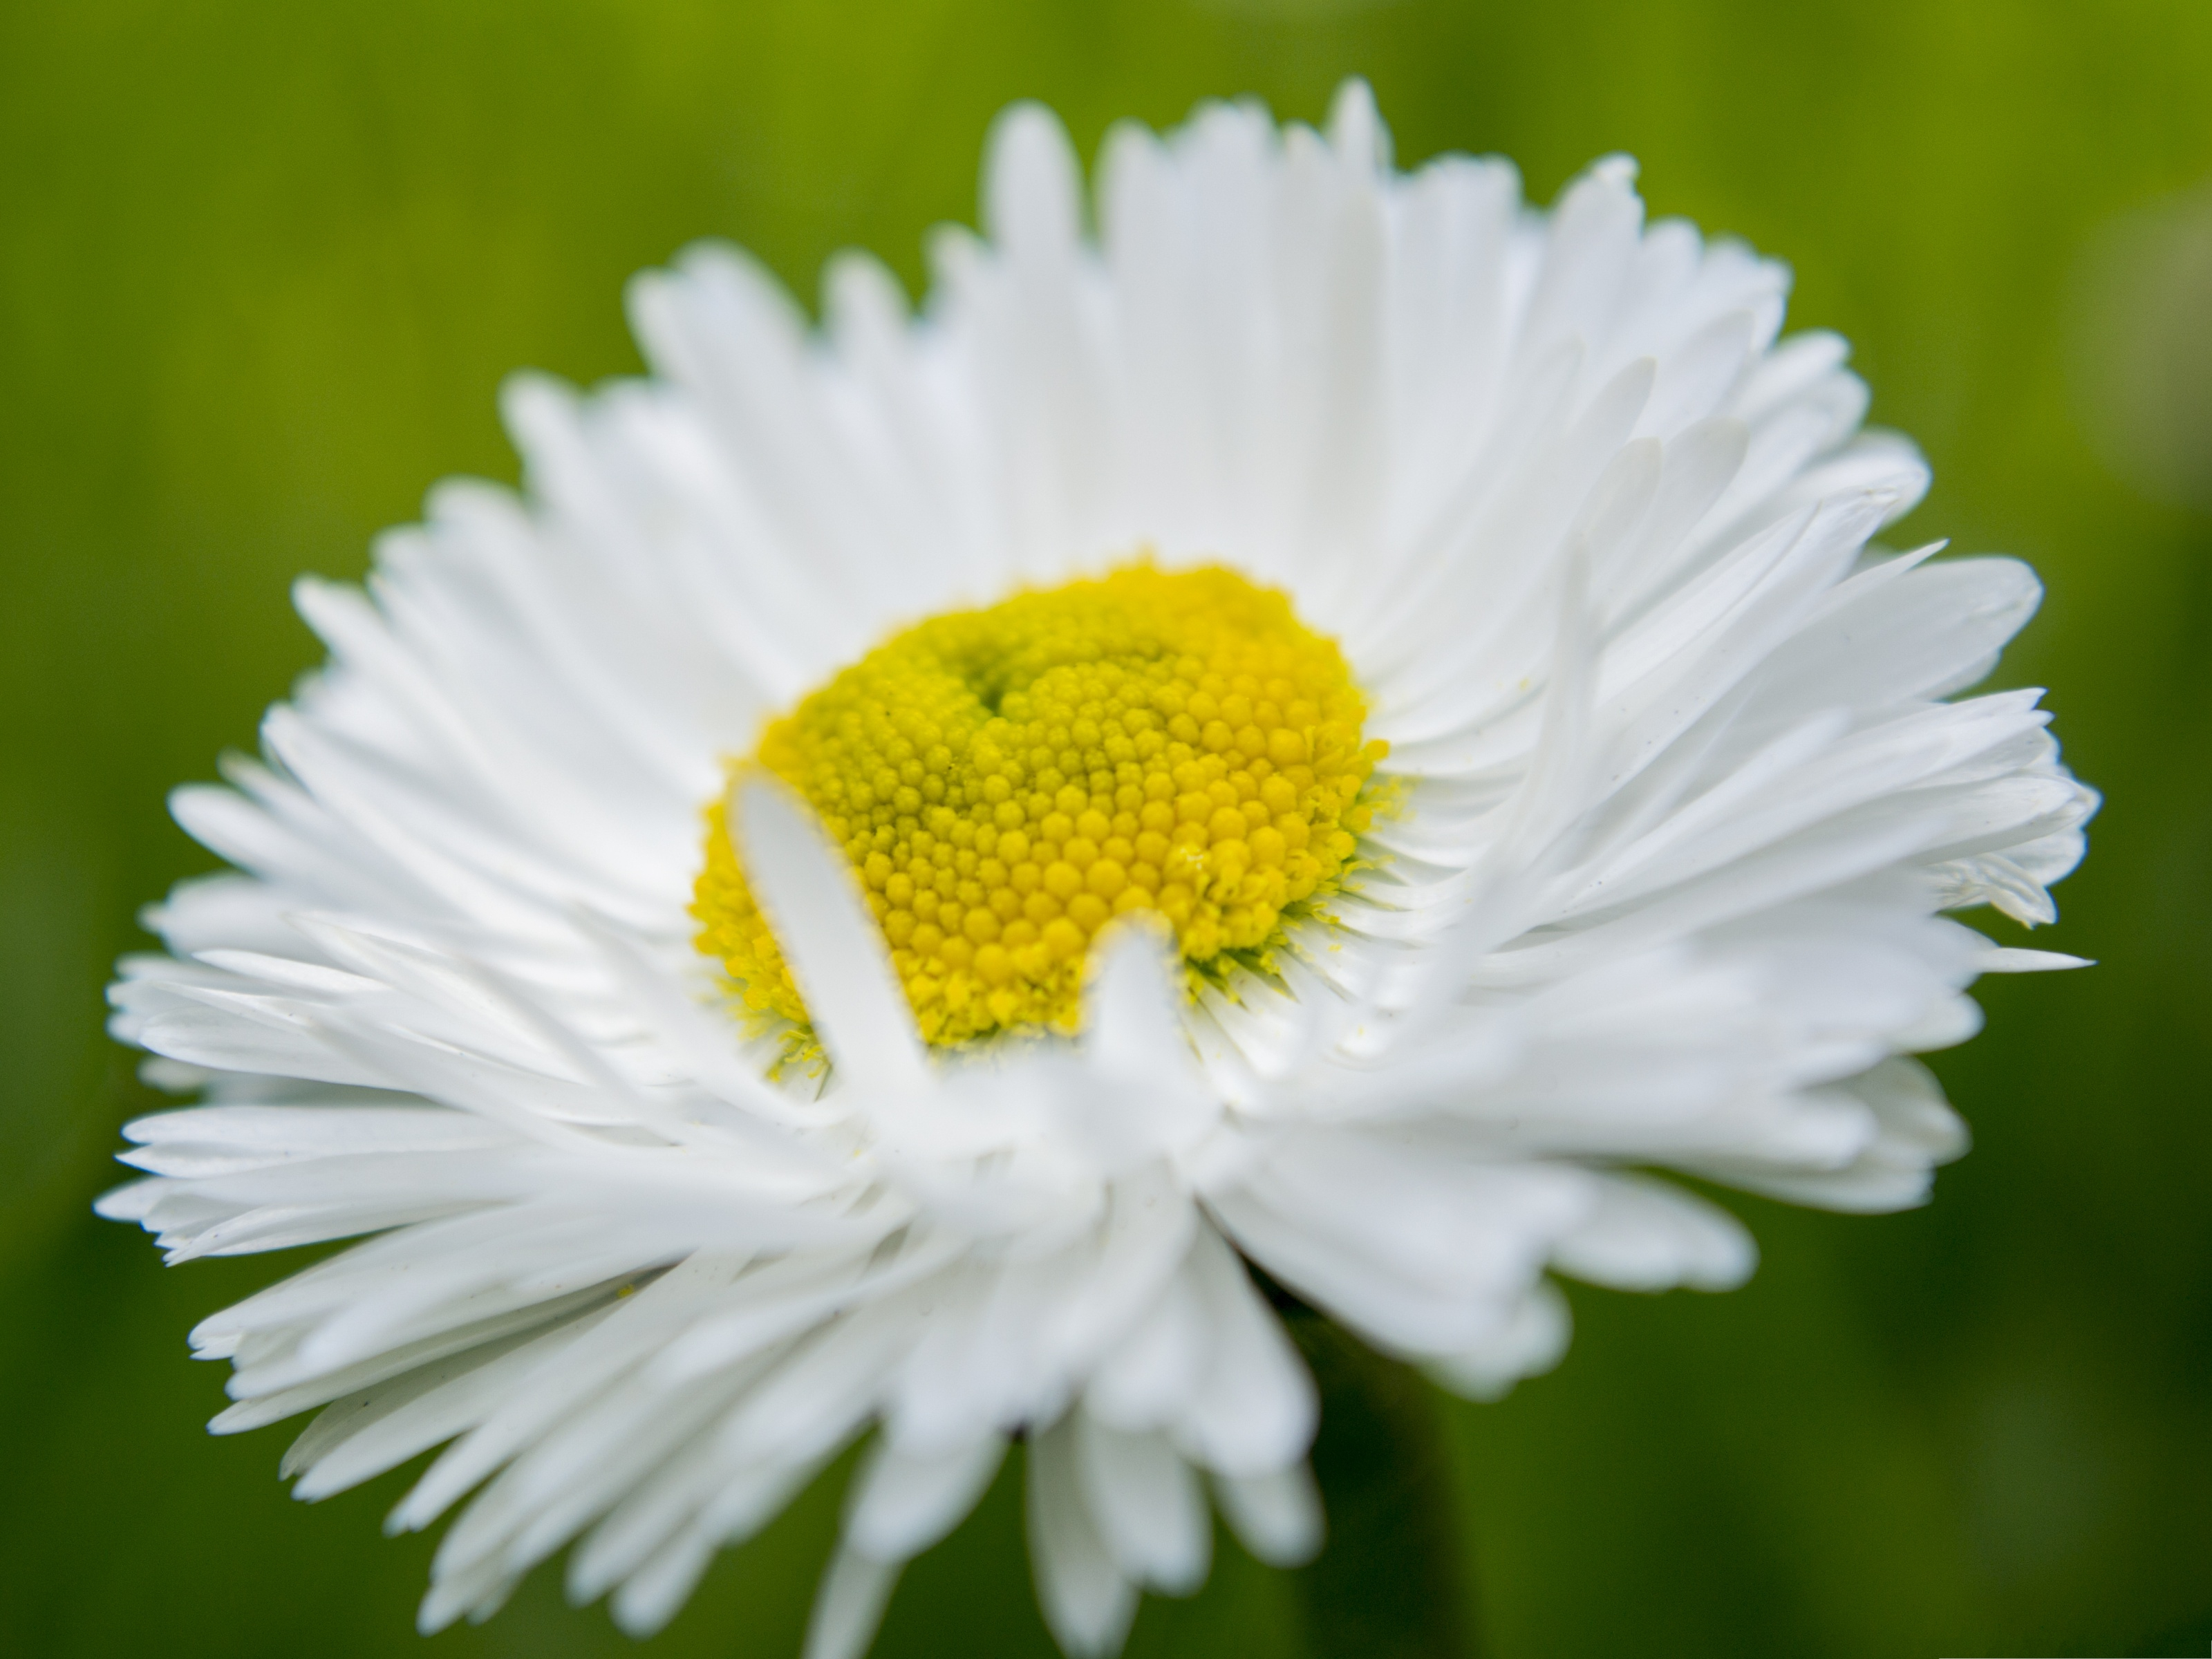 click to free download the wallpaper--Wallpaper for Widescreen, Camomile Under Macro Focus, Green Background 3200X2400 free wallpaper download